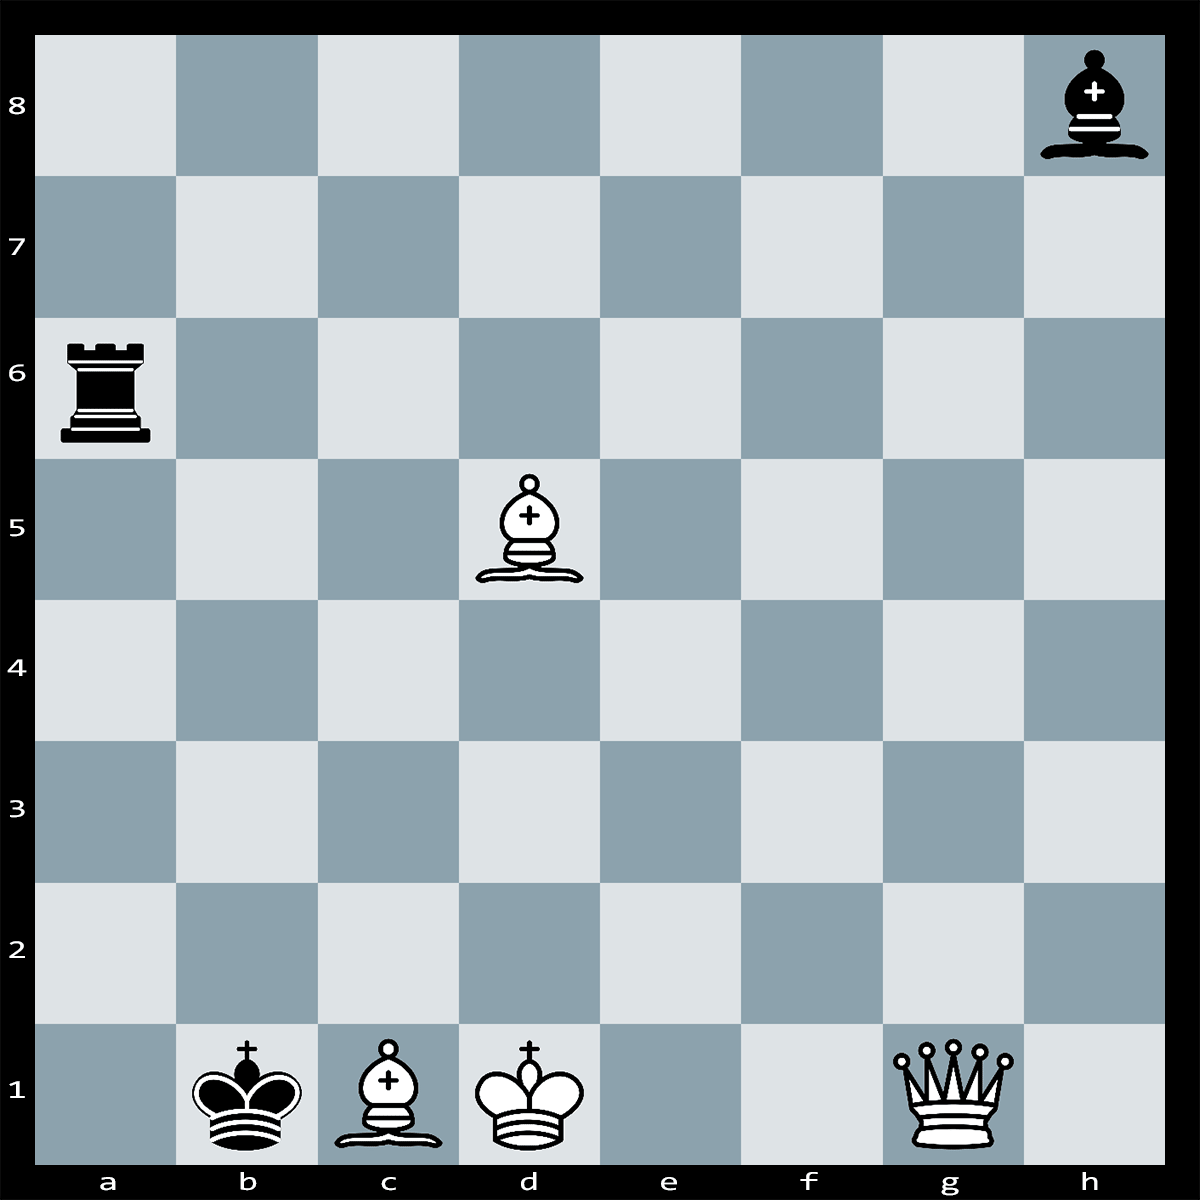 Chess Puzzle #333 | White has a powerful move here, which wins the game and should not take more than 3 moves.